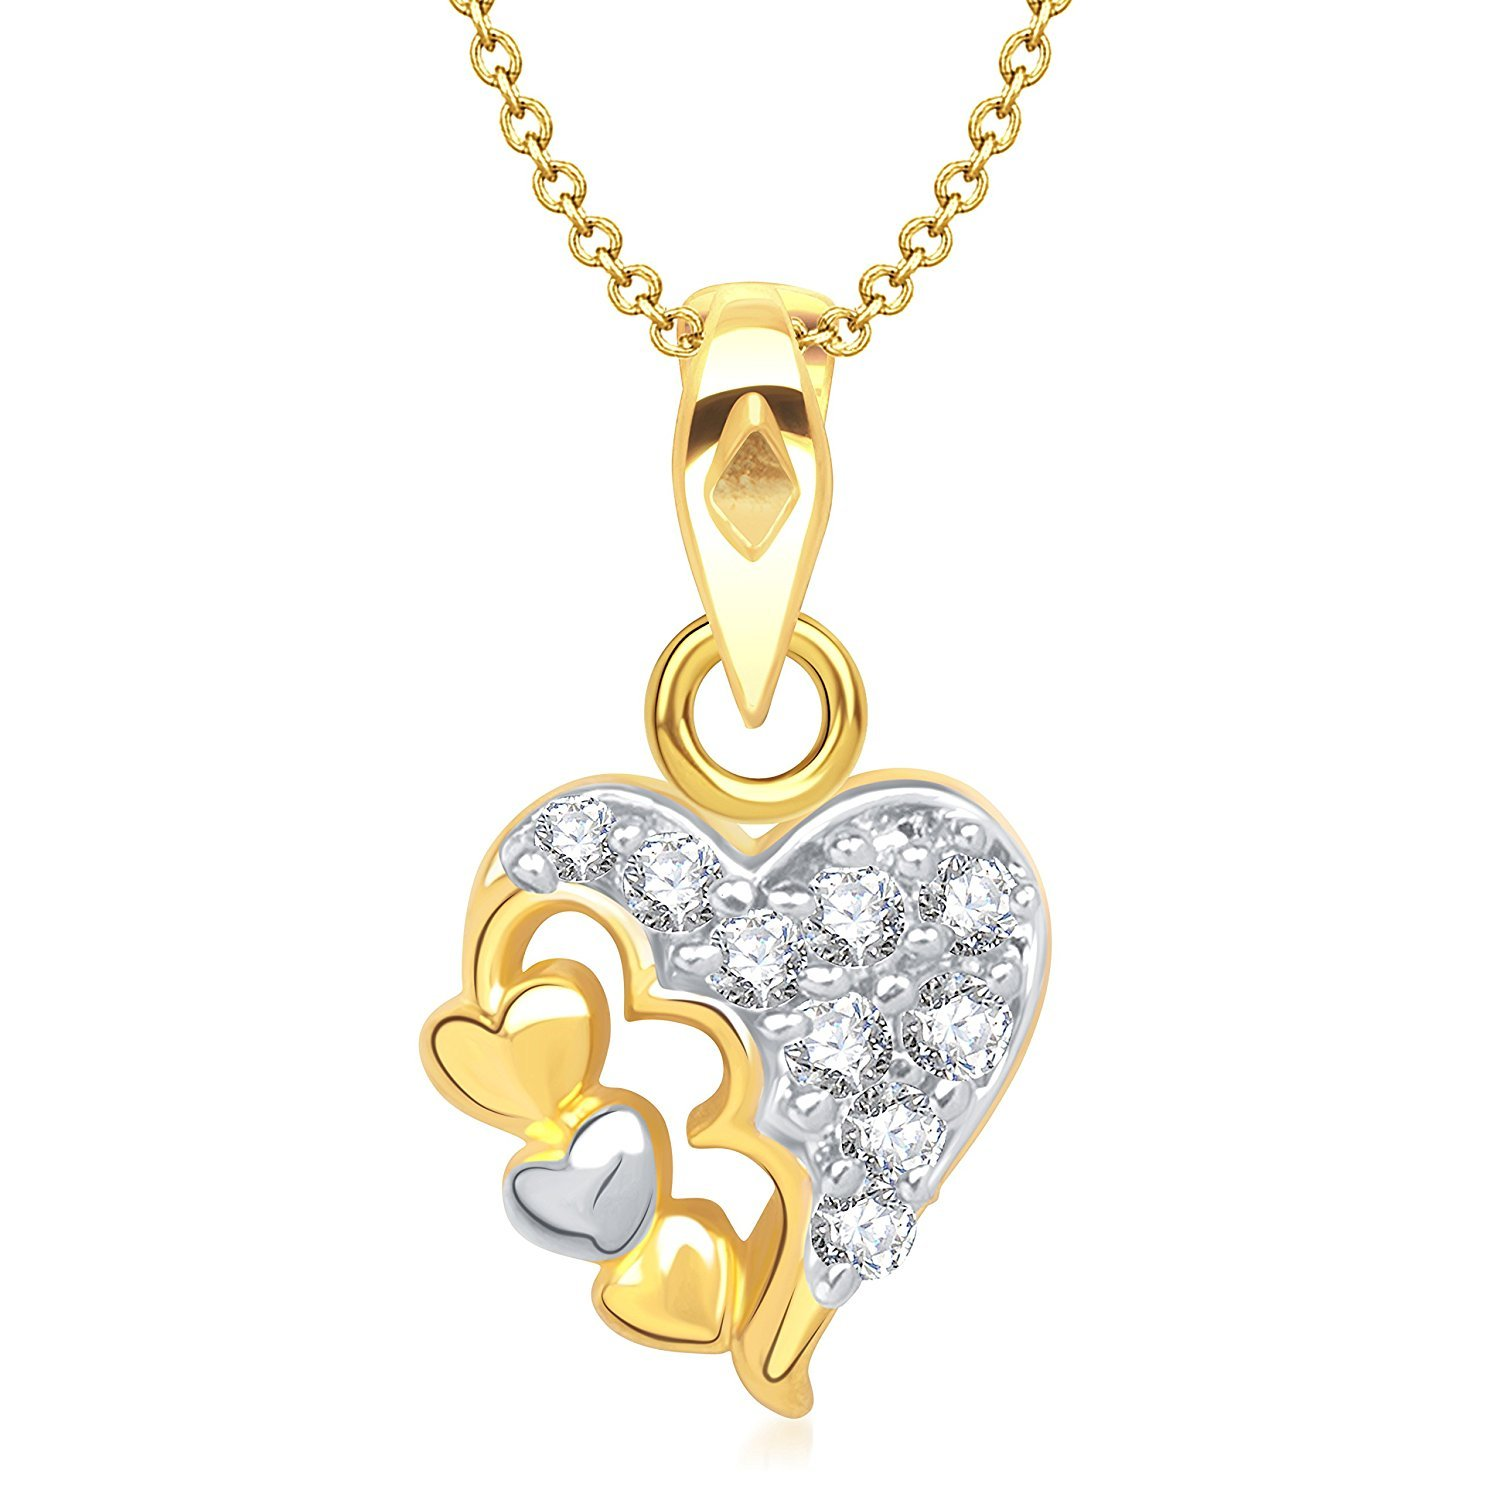 Ashley Jewels Simulated Diamond Studded Fashion Pendant Necklace in 14K Yellow Gold Plated With Box Chain